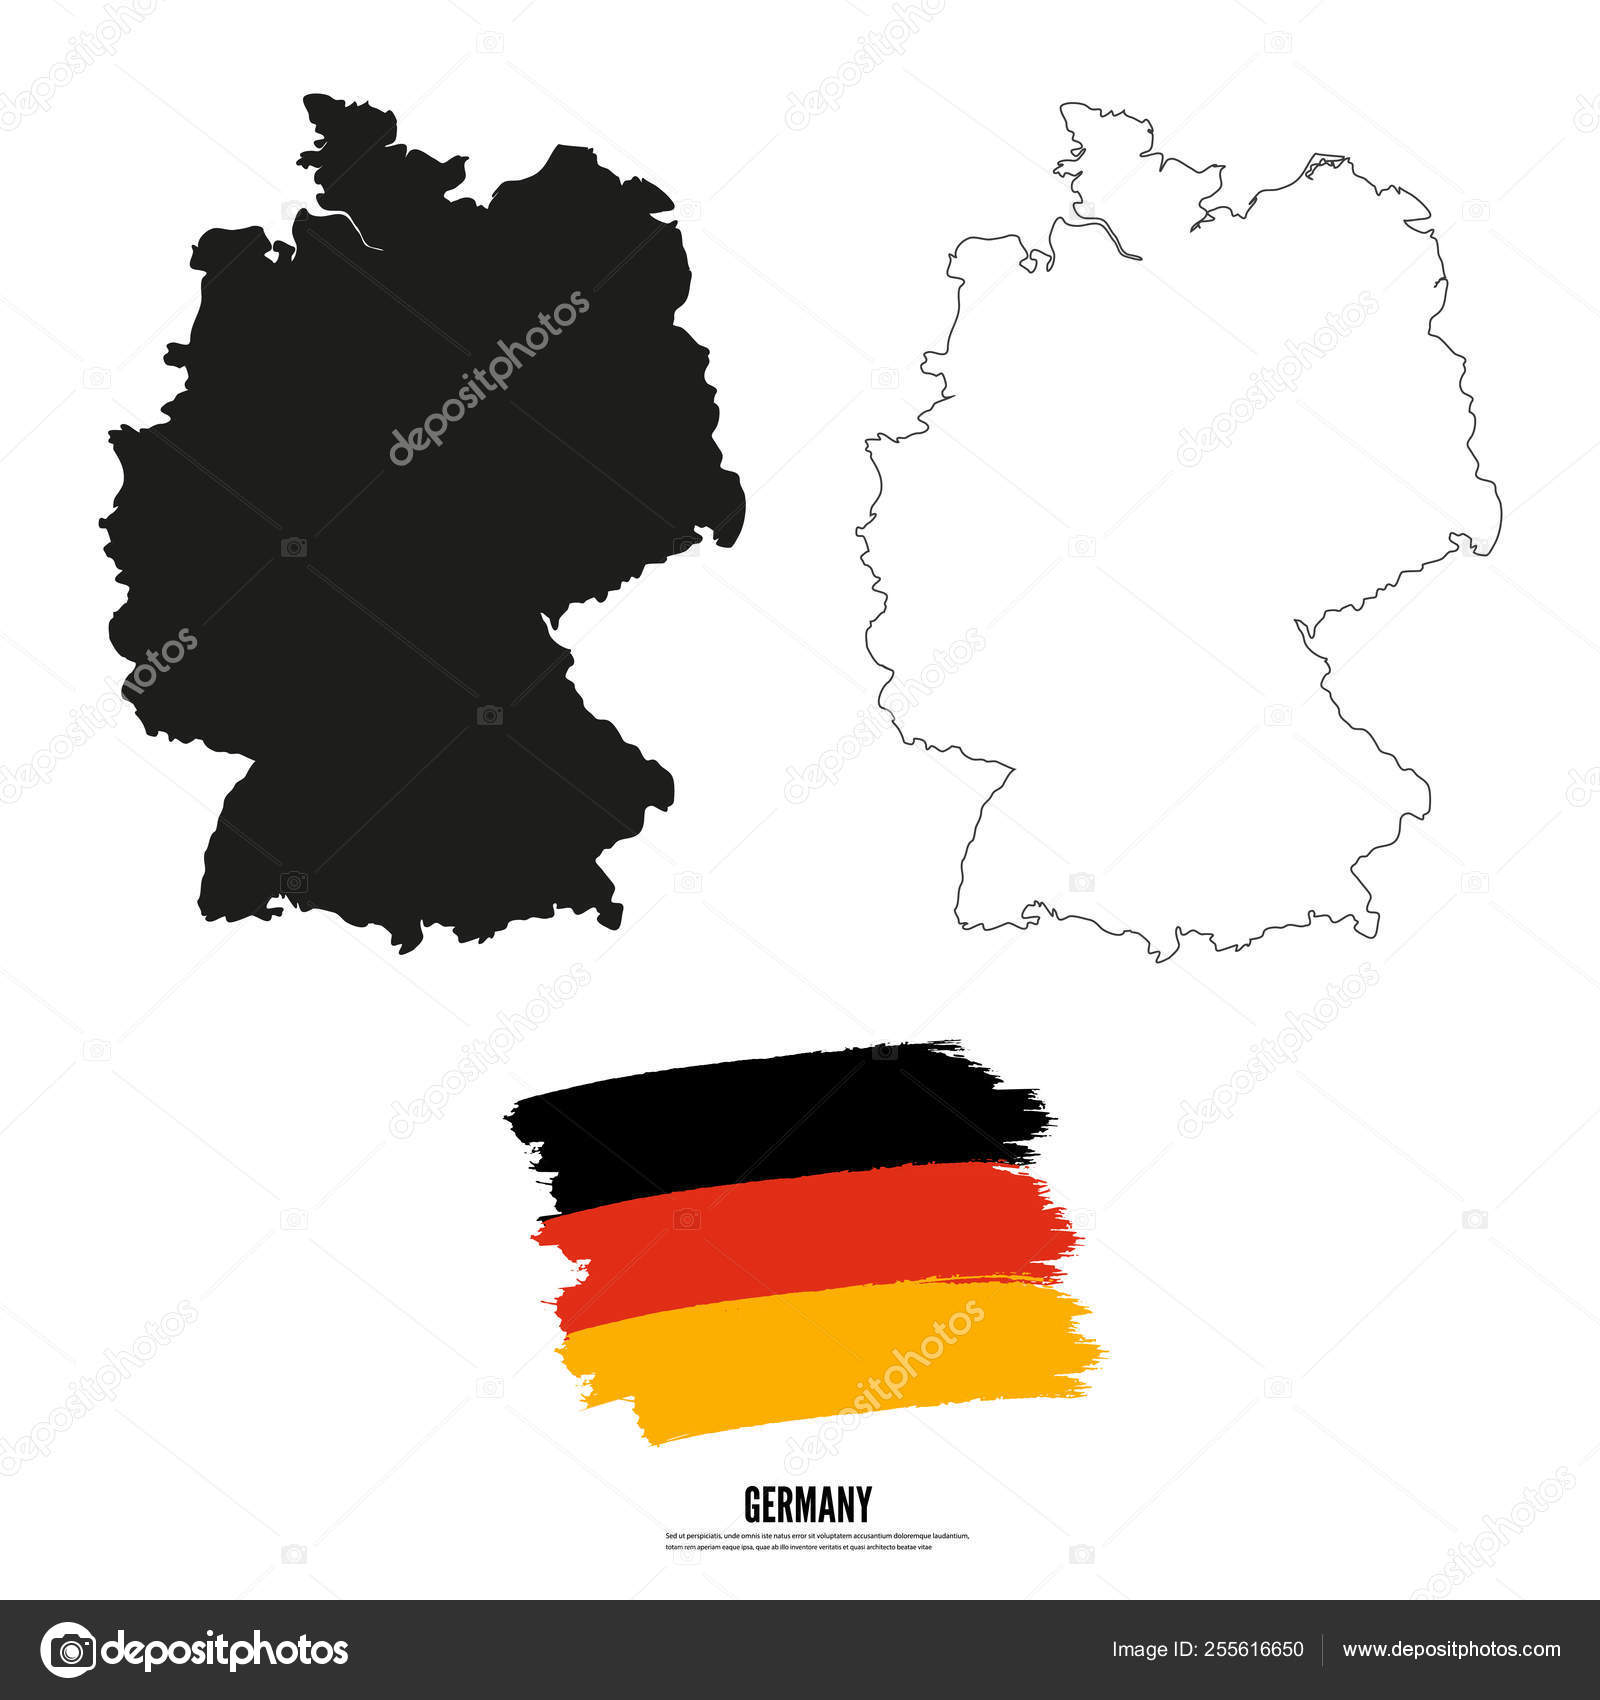 Detailed vector map and flag - Germany vector illustration ... on south sudan flag and map, england flag and map, slovakia flag and map, mozambique flag and map, british flag and map, iran flag and map, kuwait flag and map, france flag and map, arizona flag and map, malaysia flag and map, israel flag and map, syria flag and map, belize flag and map, portugal flag and map, zambia flag and map, chad flag and map, china flag and map, ireland flag and map, lebanon flag and map, ukraine flag and map,